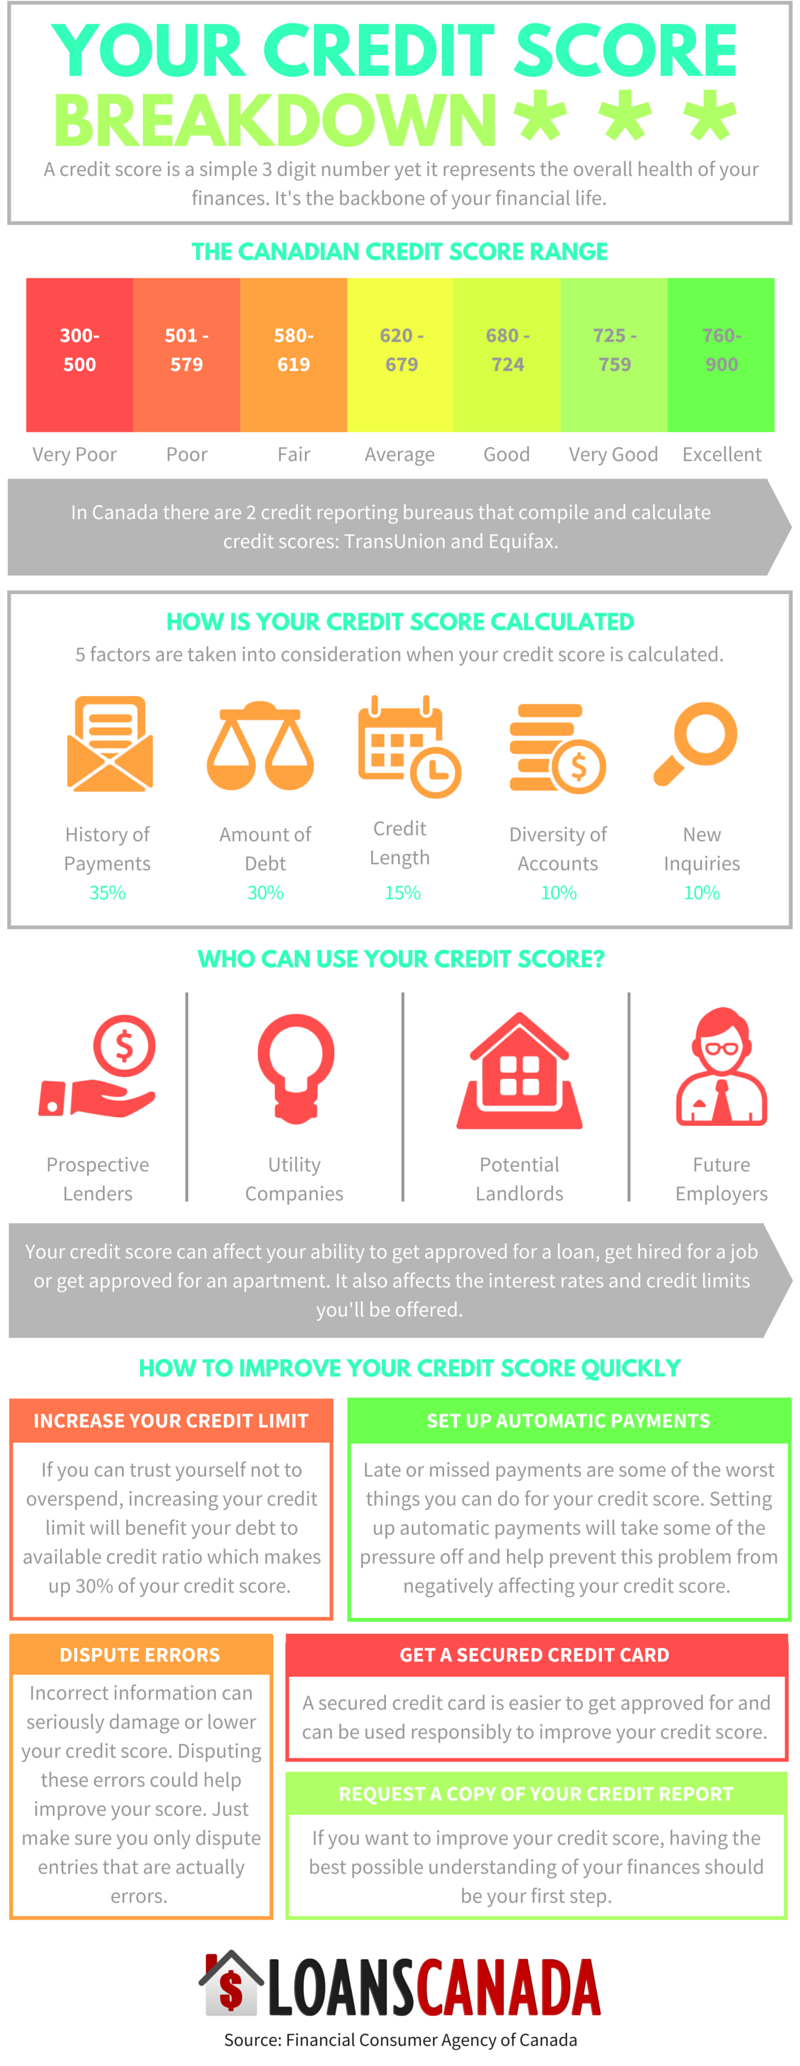 Does online gambling affect your credit rating